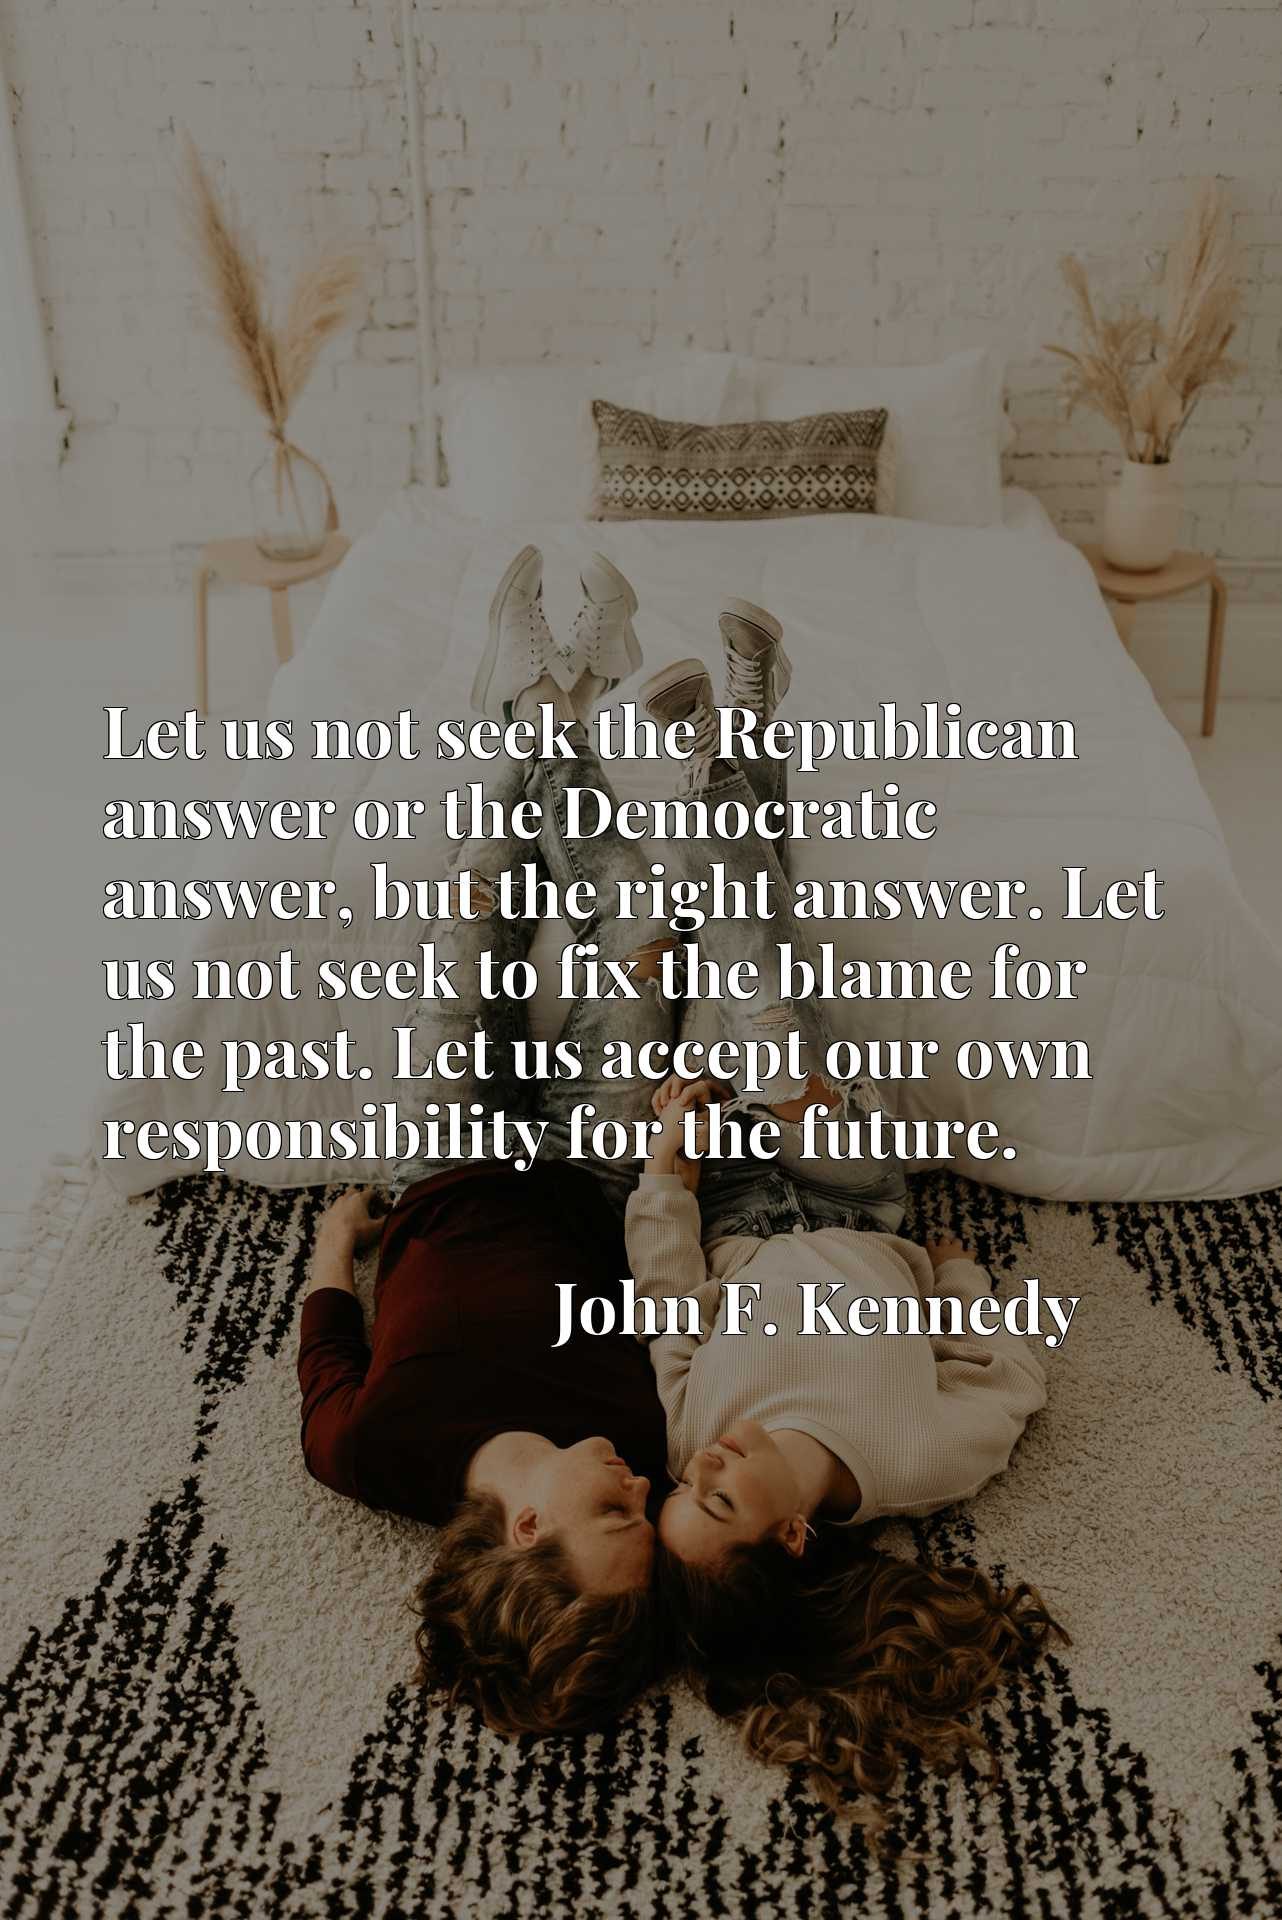 Let us not seek the Republican answer or the Democratic answer, but the right answer. Let us not seek to fix the blame for the past. Let us accept our own responsibility for the future.